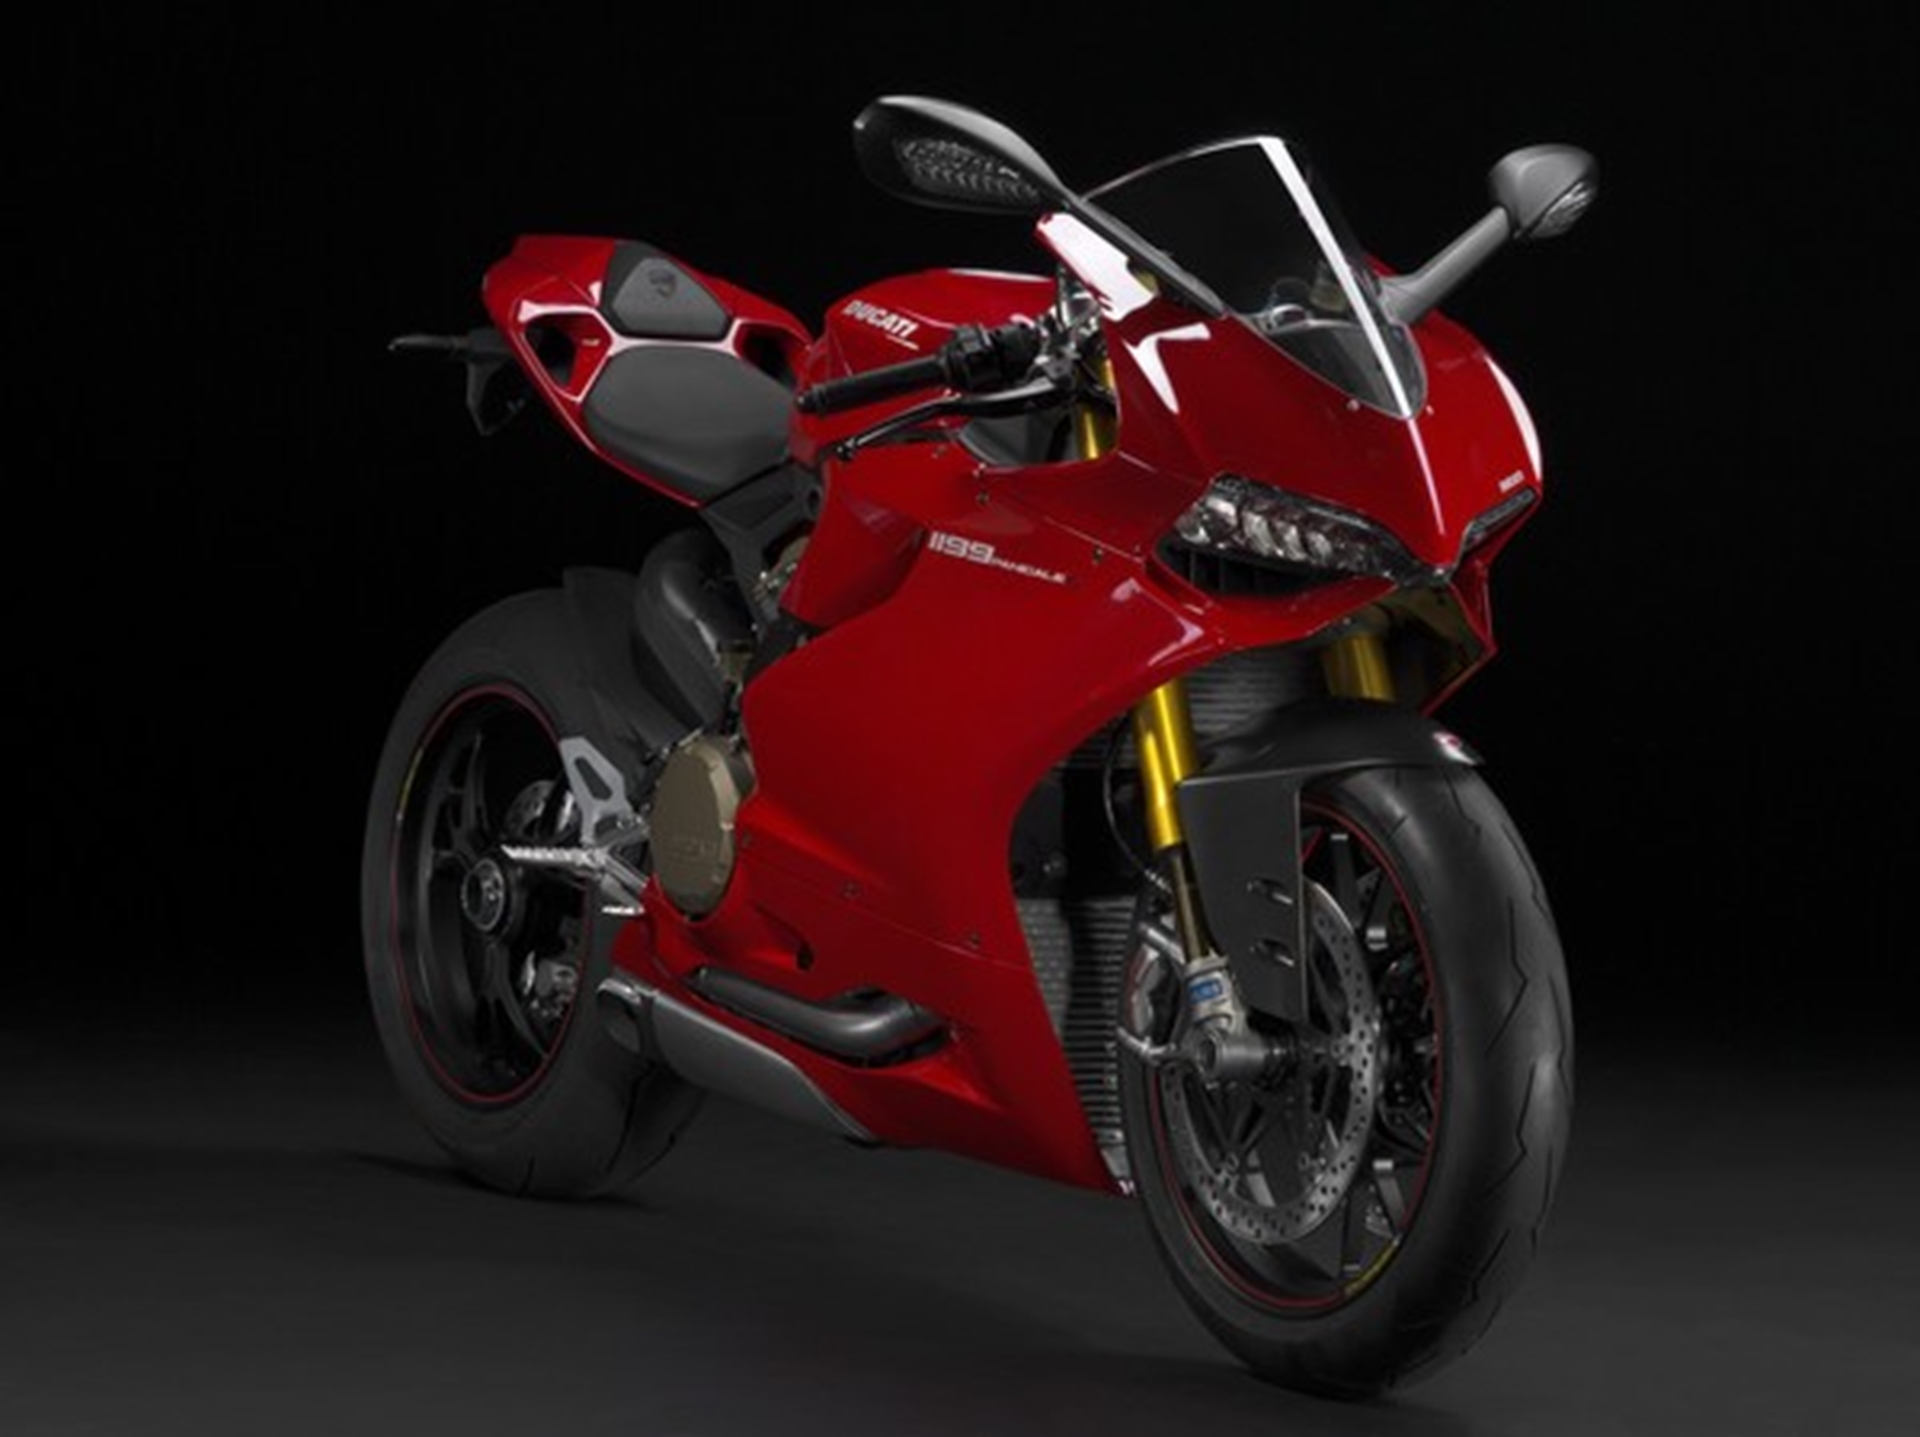 New Superbike The 1199 Panigale And Updated Ducati Range At